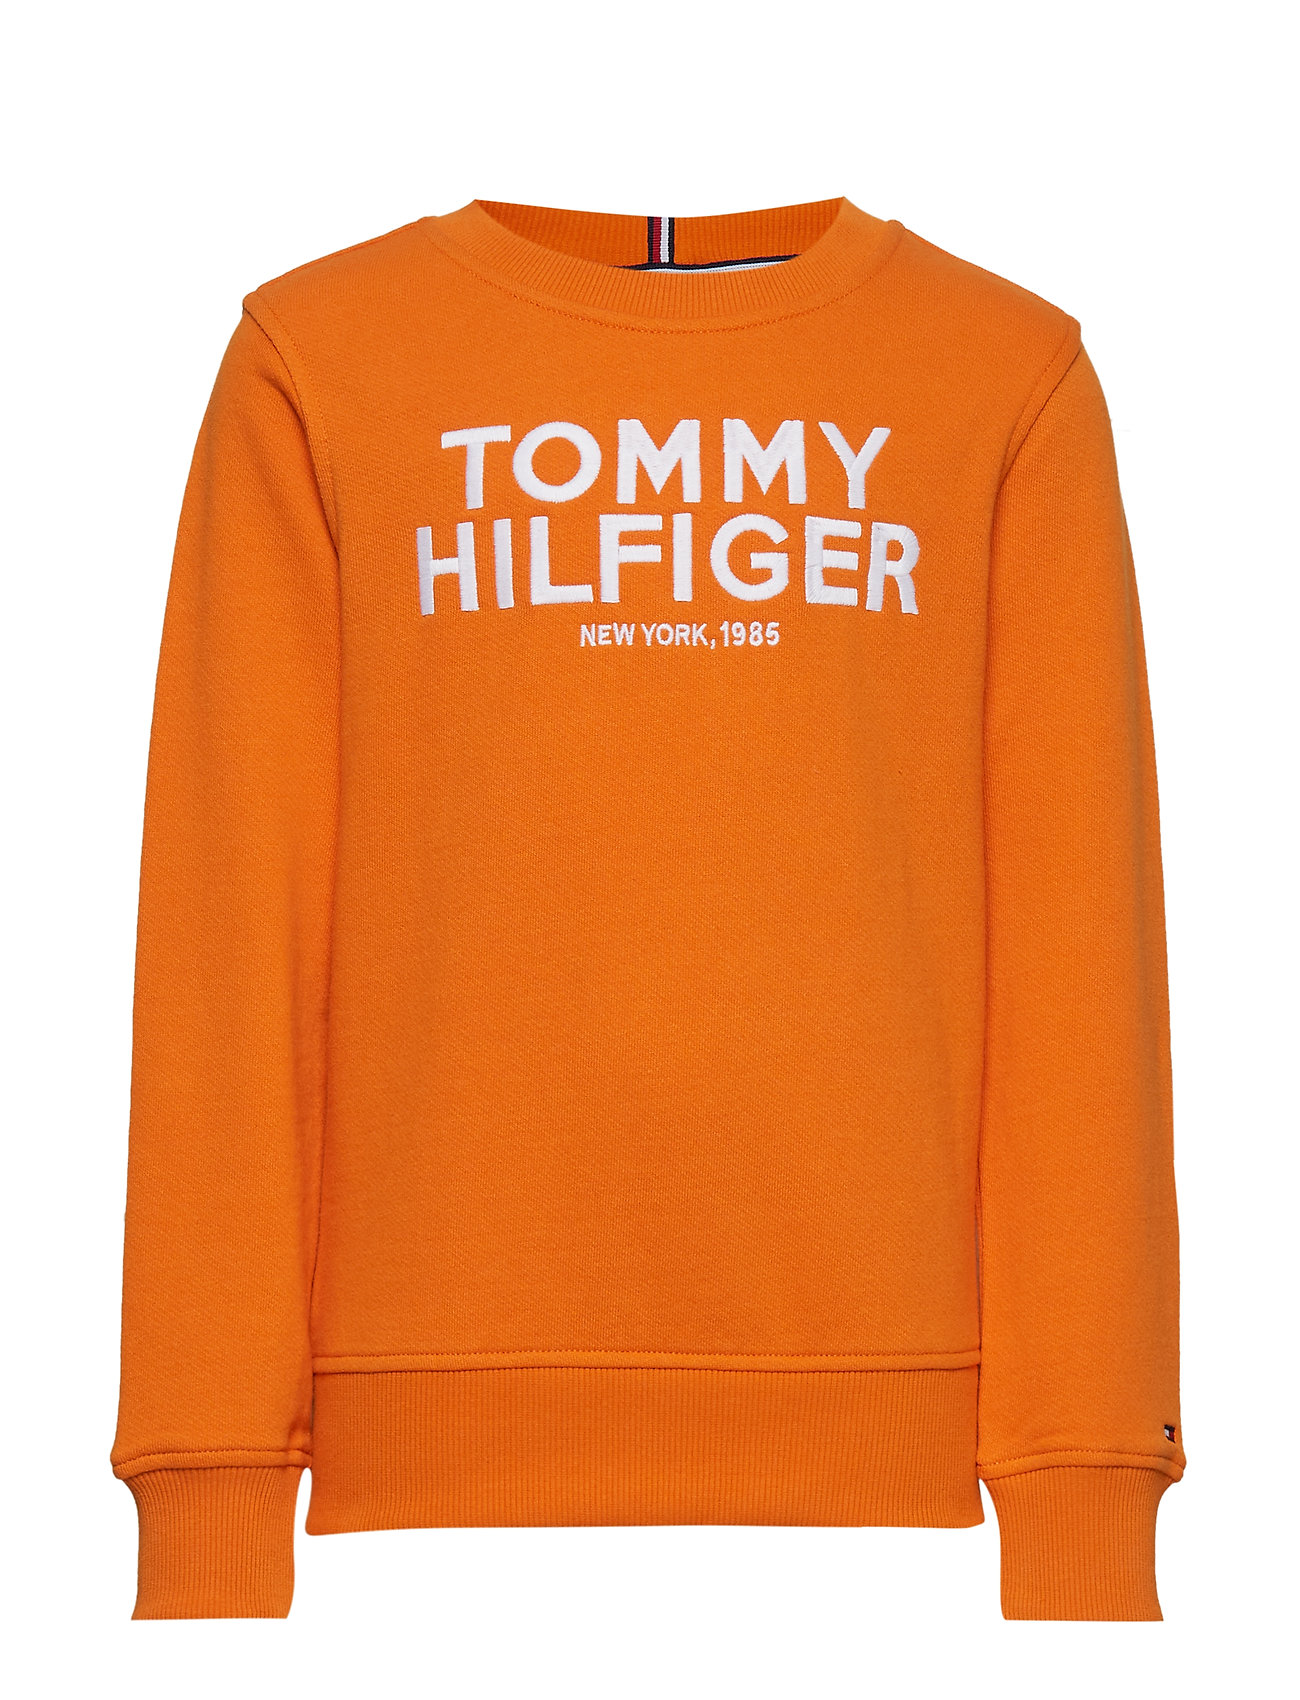 Tommy Hilfiger LOGO EMBROIDERED SWE - RUSSET ORANGE